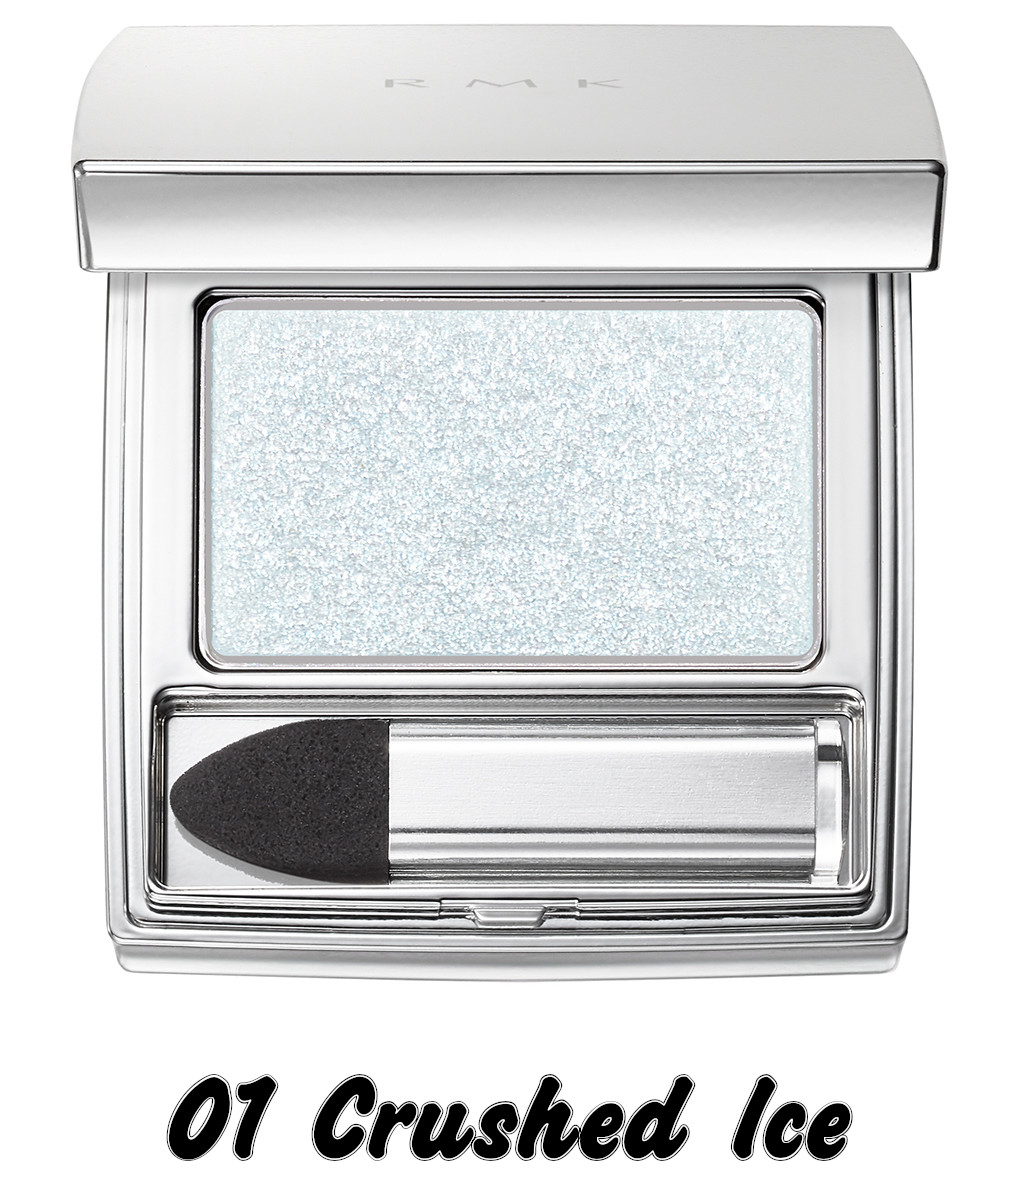 RMK The Now Now Summer 2021 Collection The Now Now Eyes 01 Crushed Ice